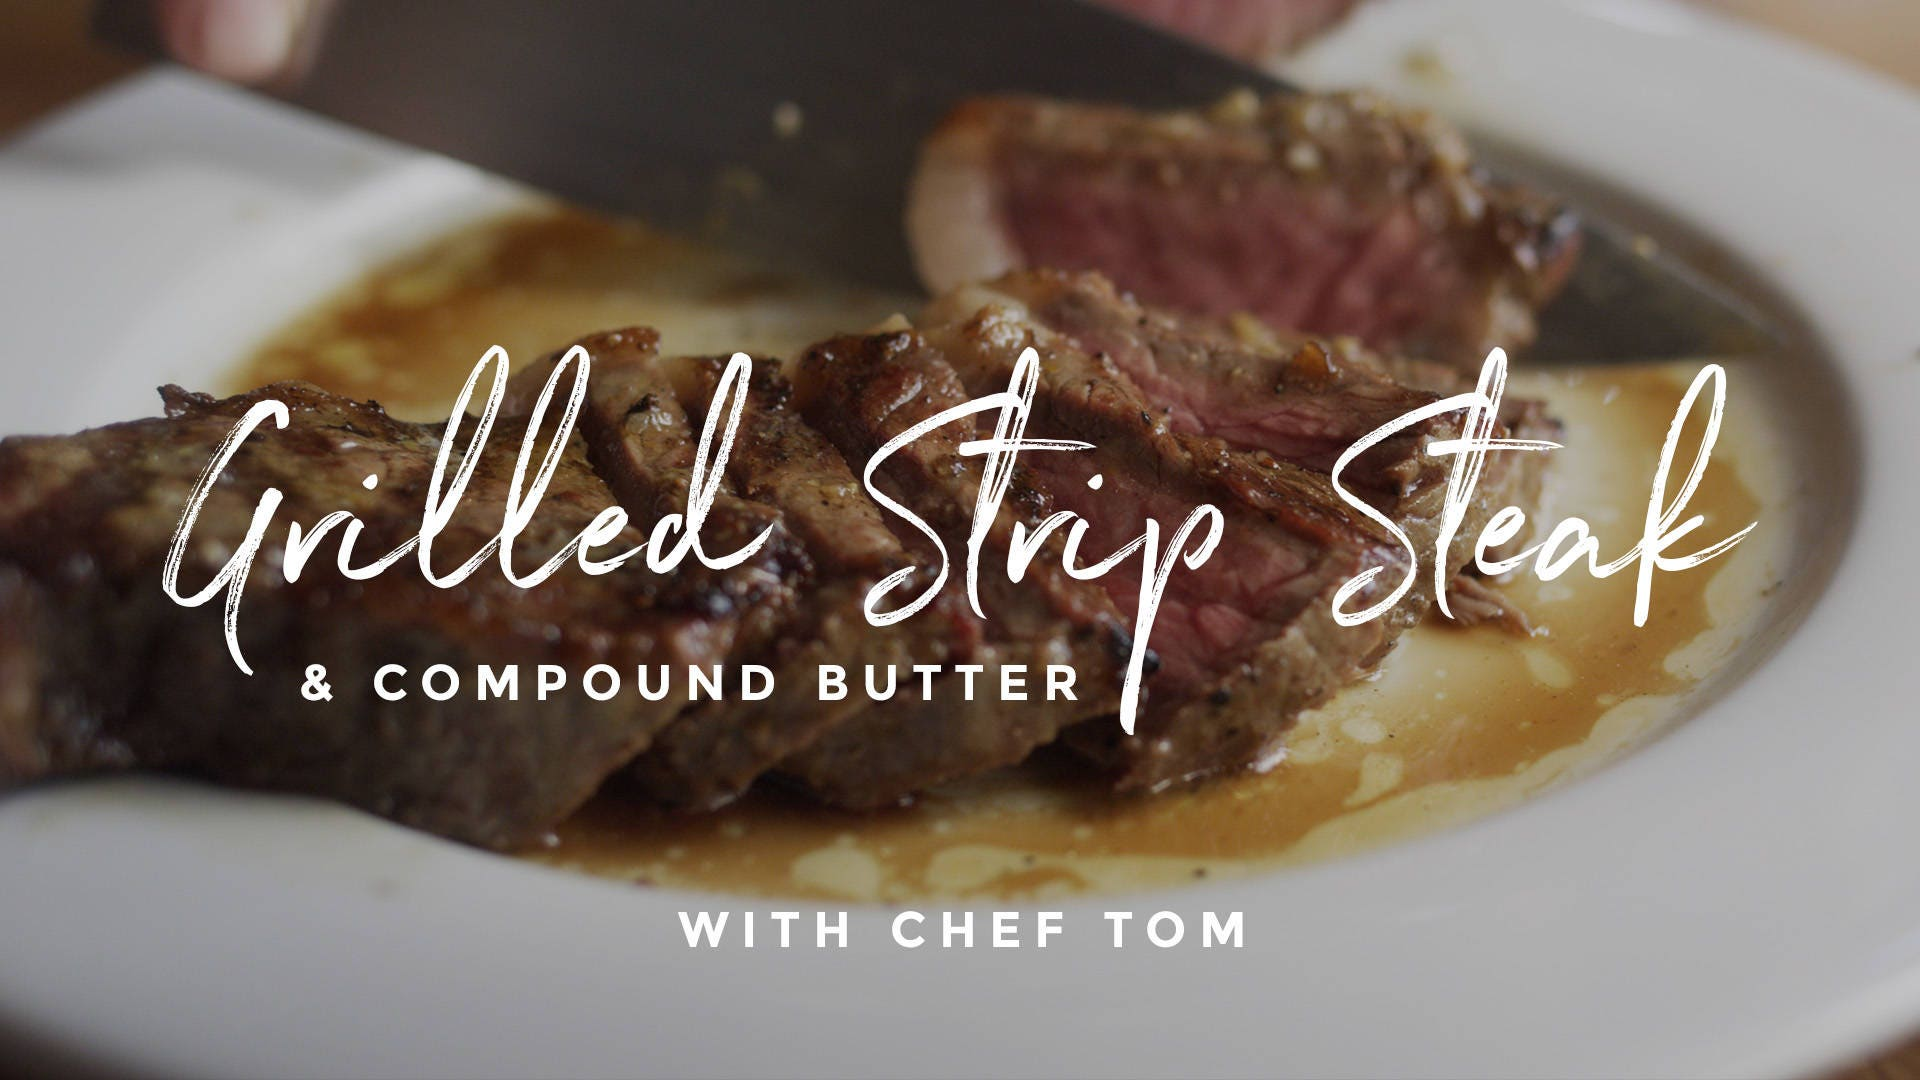 How to make Grilled Strip Steak with Compound Butter